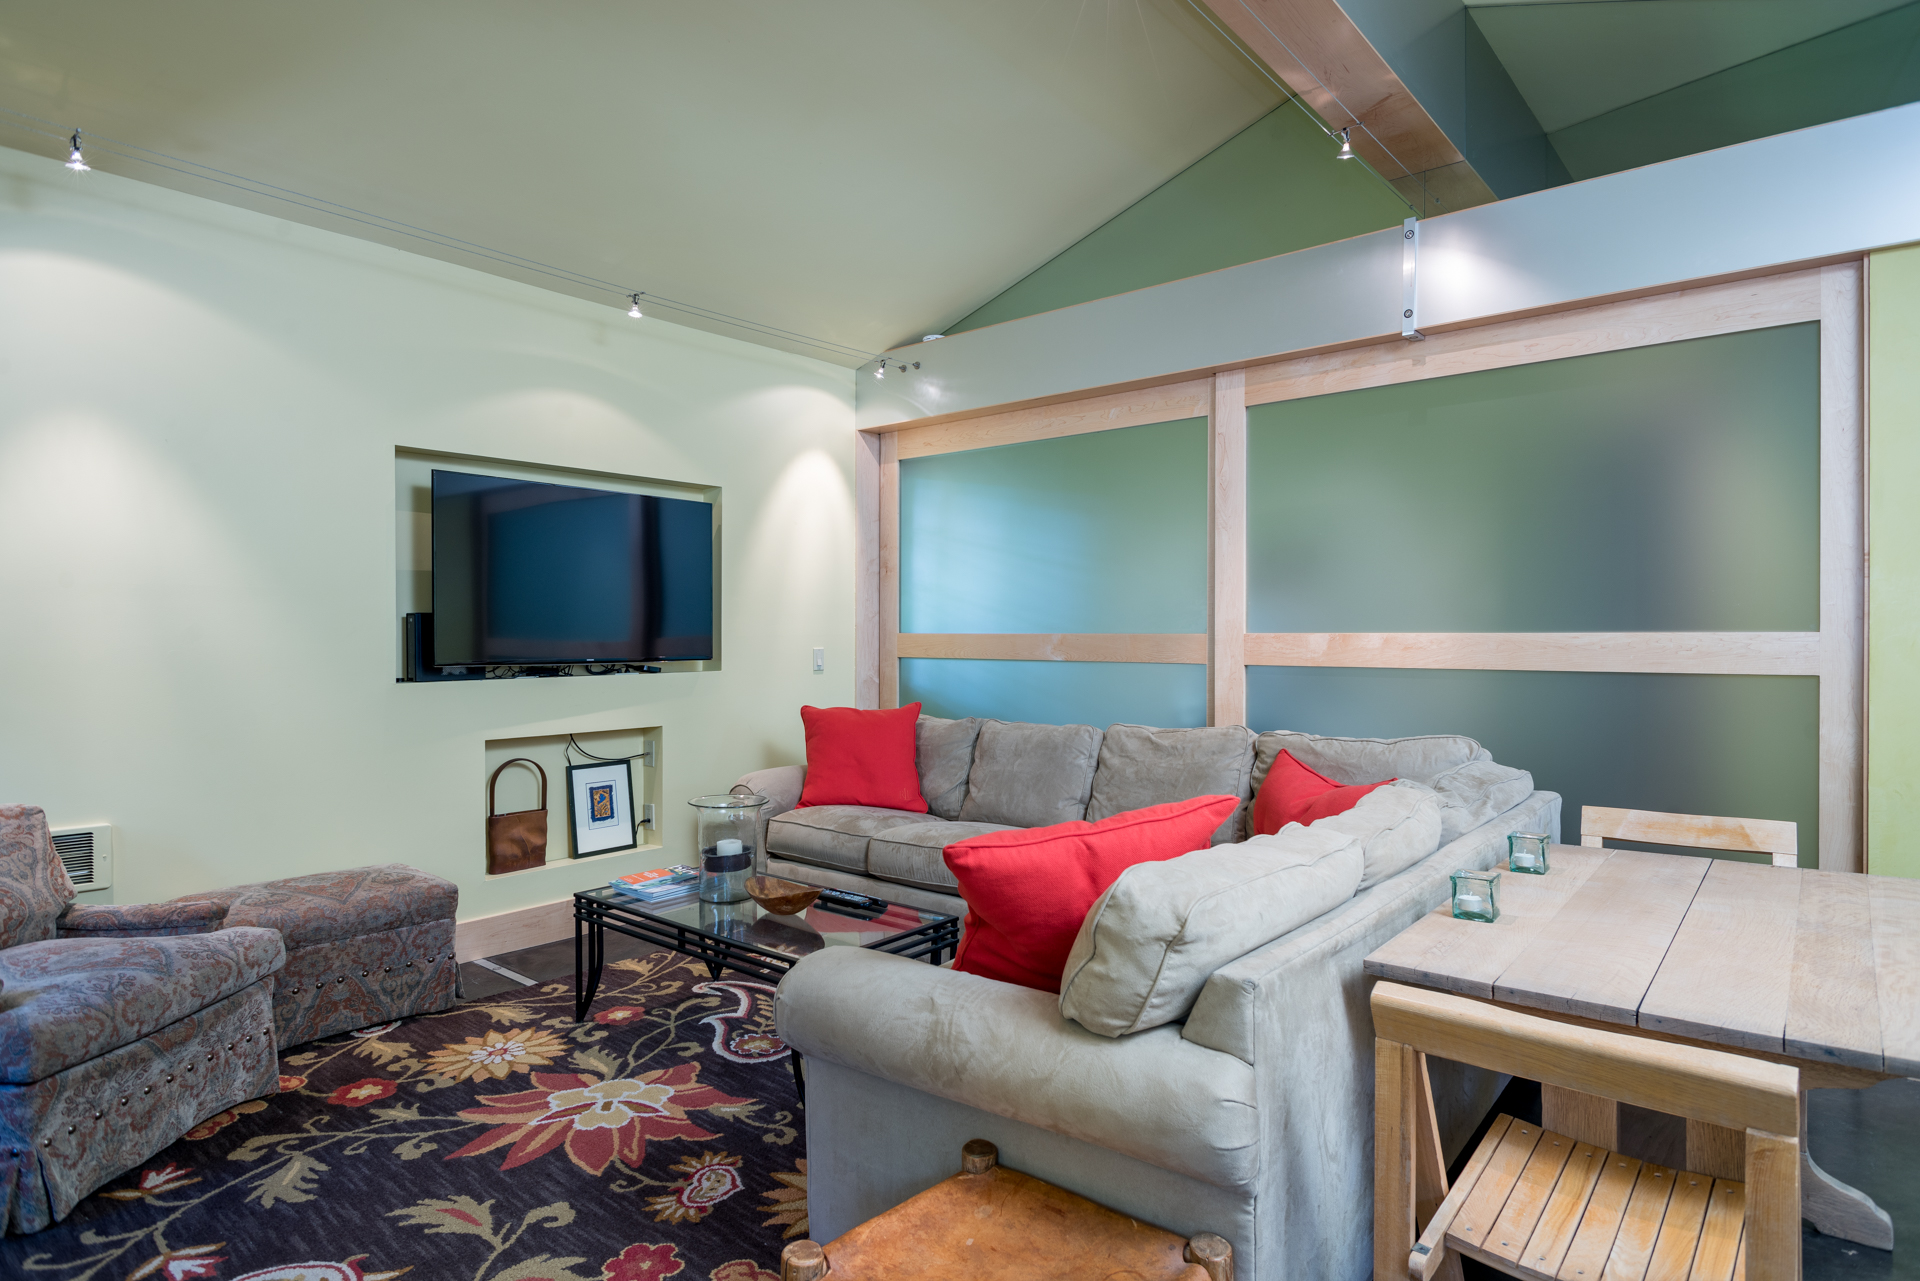 Guest Apartment at this Featured Listing in Ketchum, Idaho